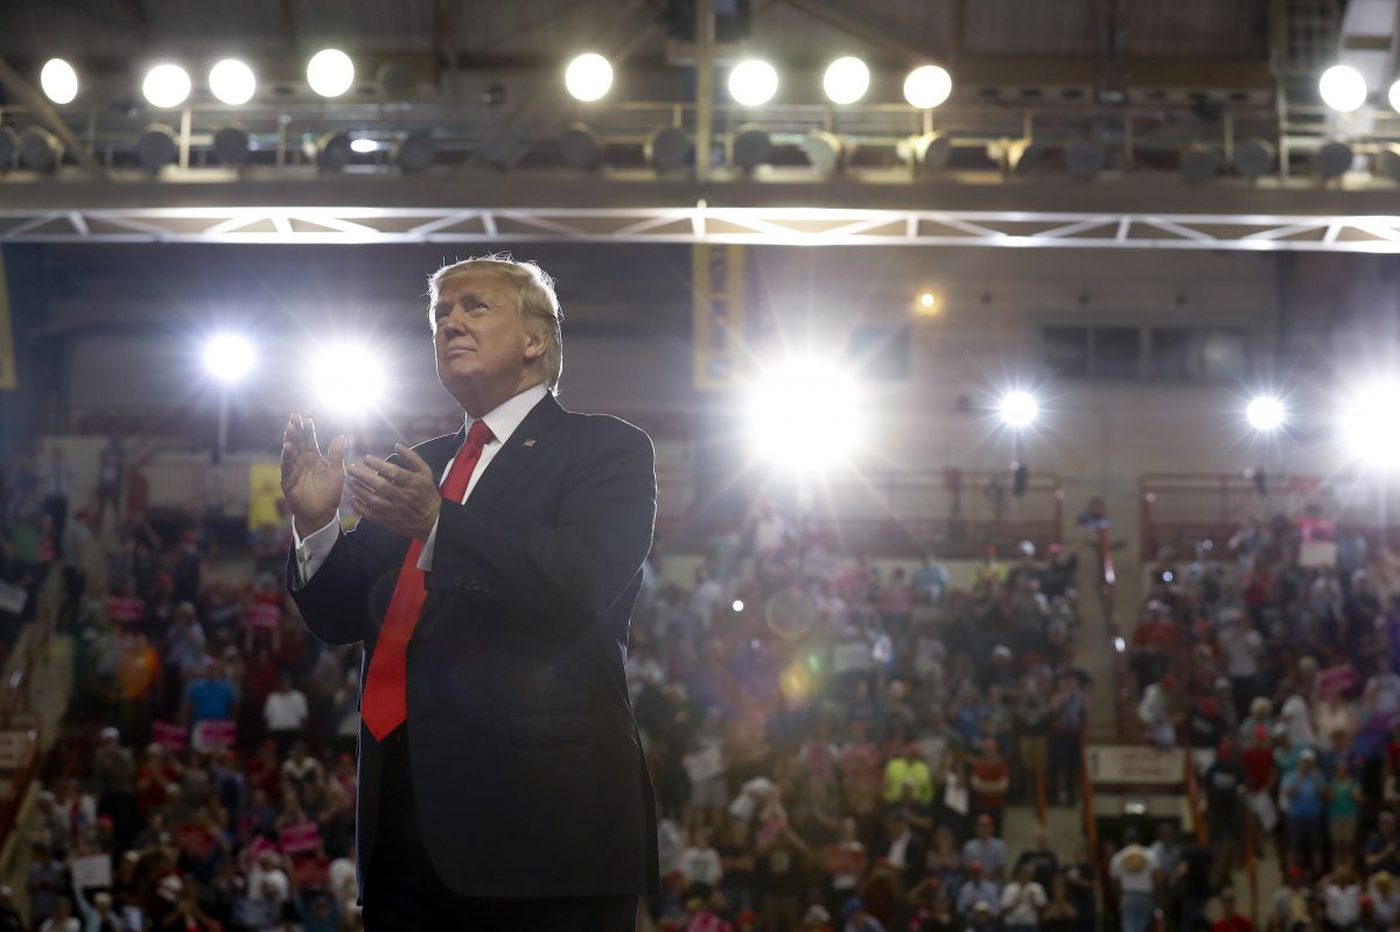 Poll: Trump's GOP support slips in Pa. but core base sticks with him